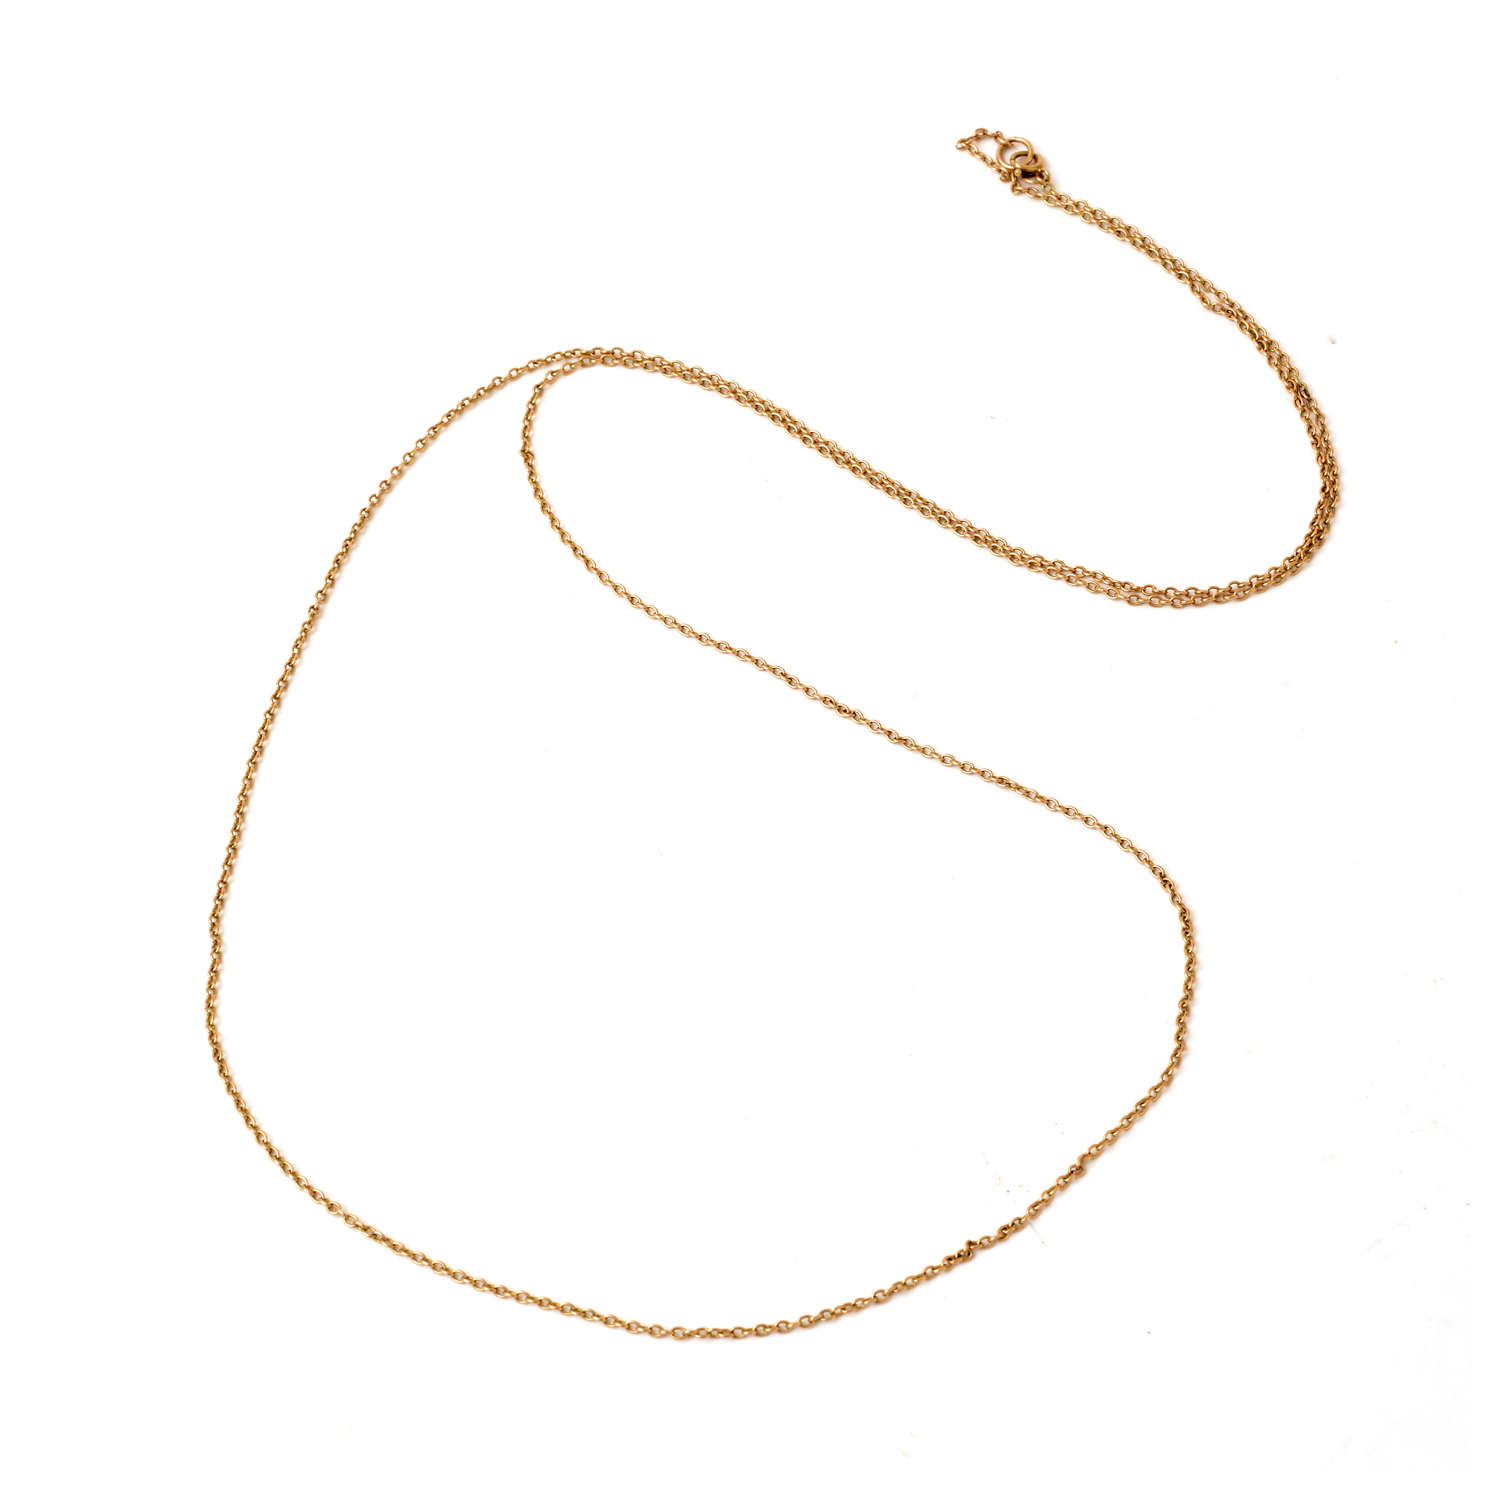 9ct gold trace link long chain